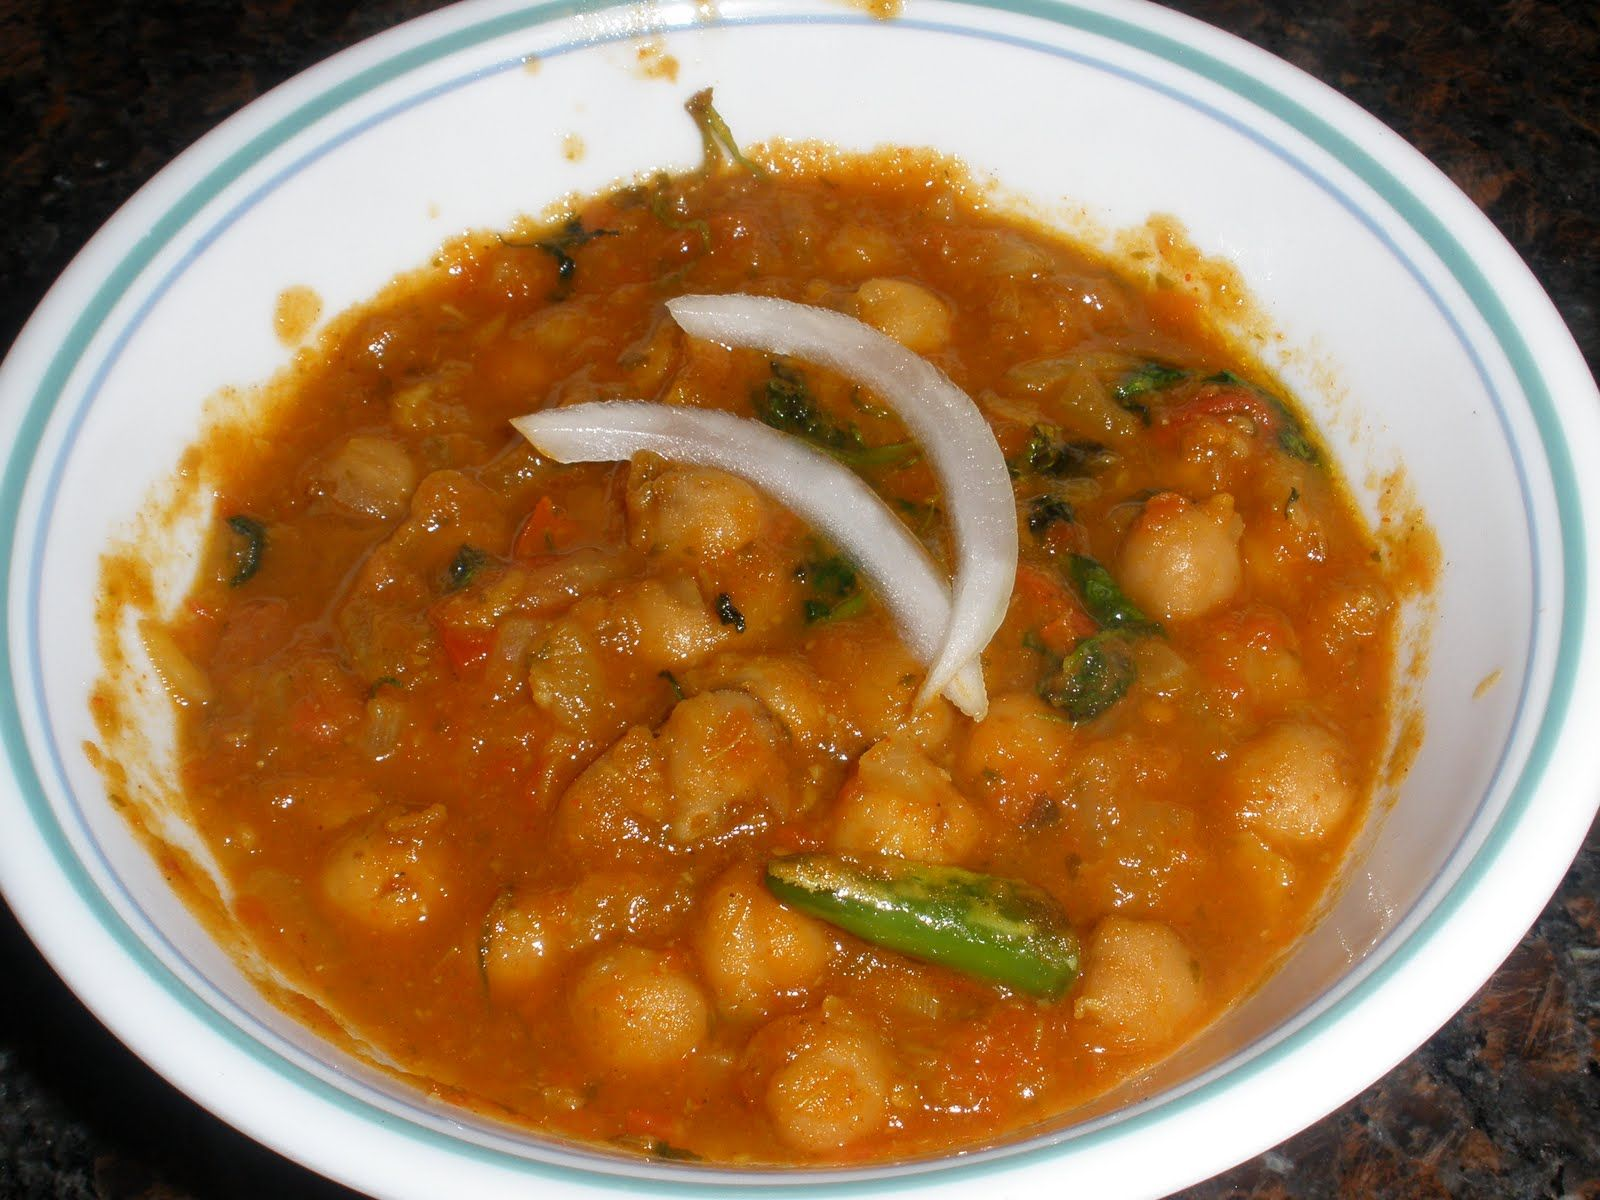 Indian chinese recipes sanjeev kapoor channa bhatura recipe indian chinese recipes sanjeev kapoor channa bhatura recipe sanjeev kapoor forumfinder Gallery